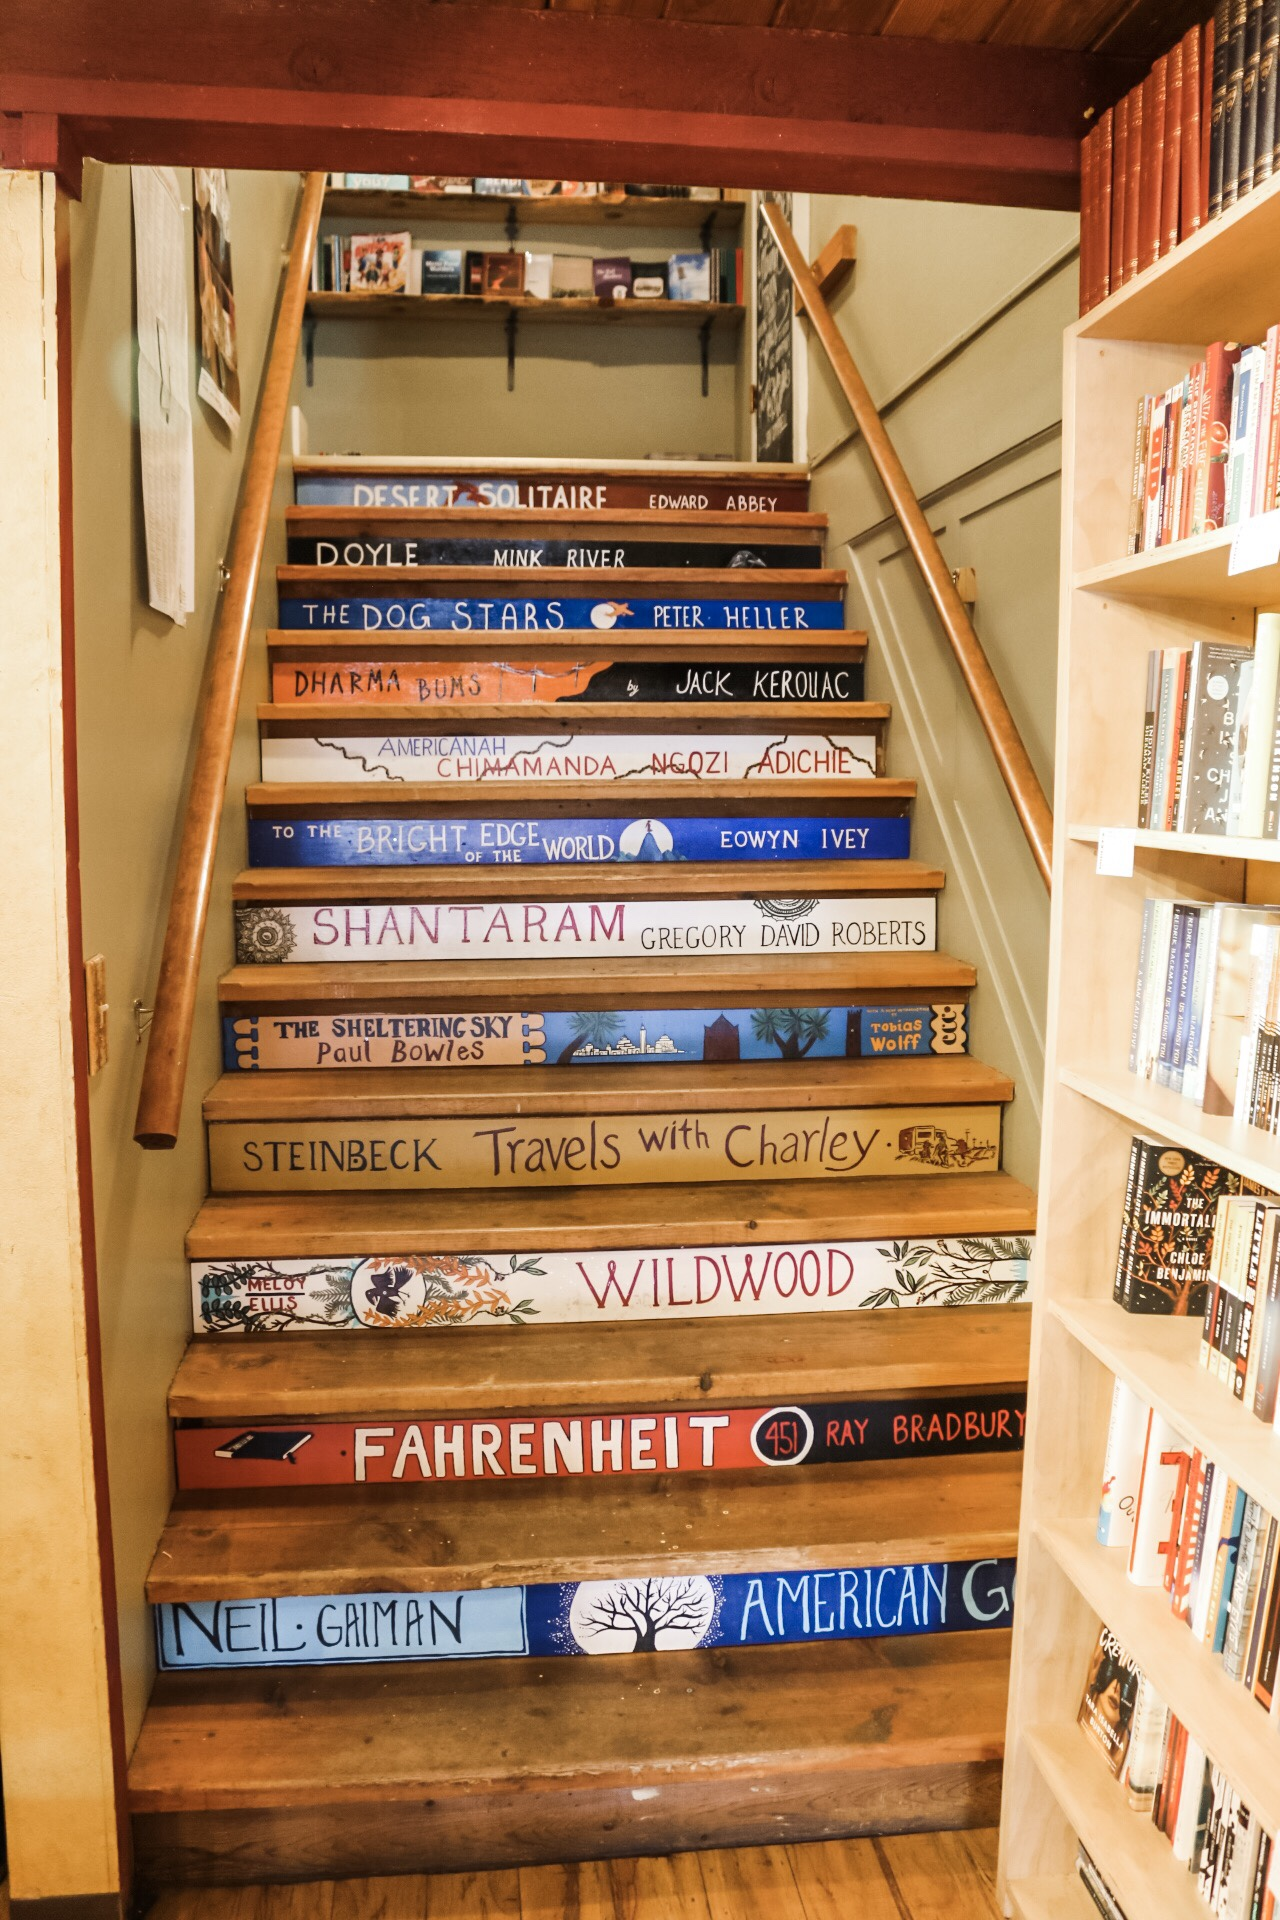 Loved these clever stairs leading to the second floor at Dudleys Bookshop Cafe.